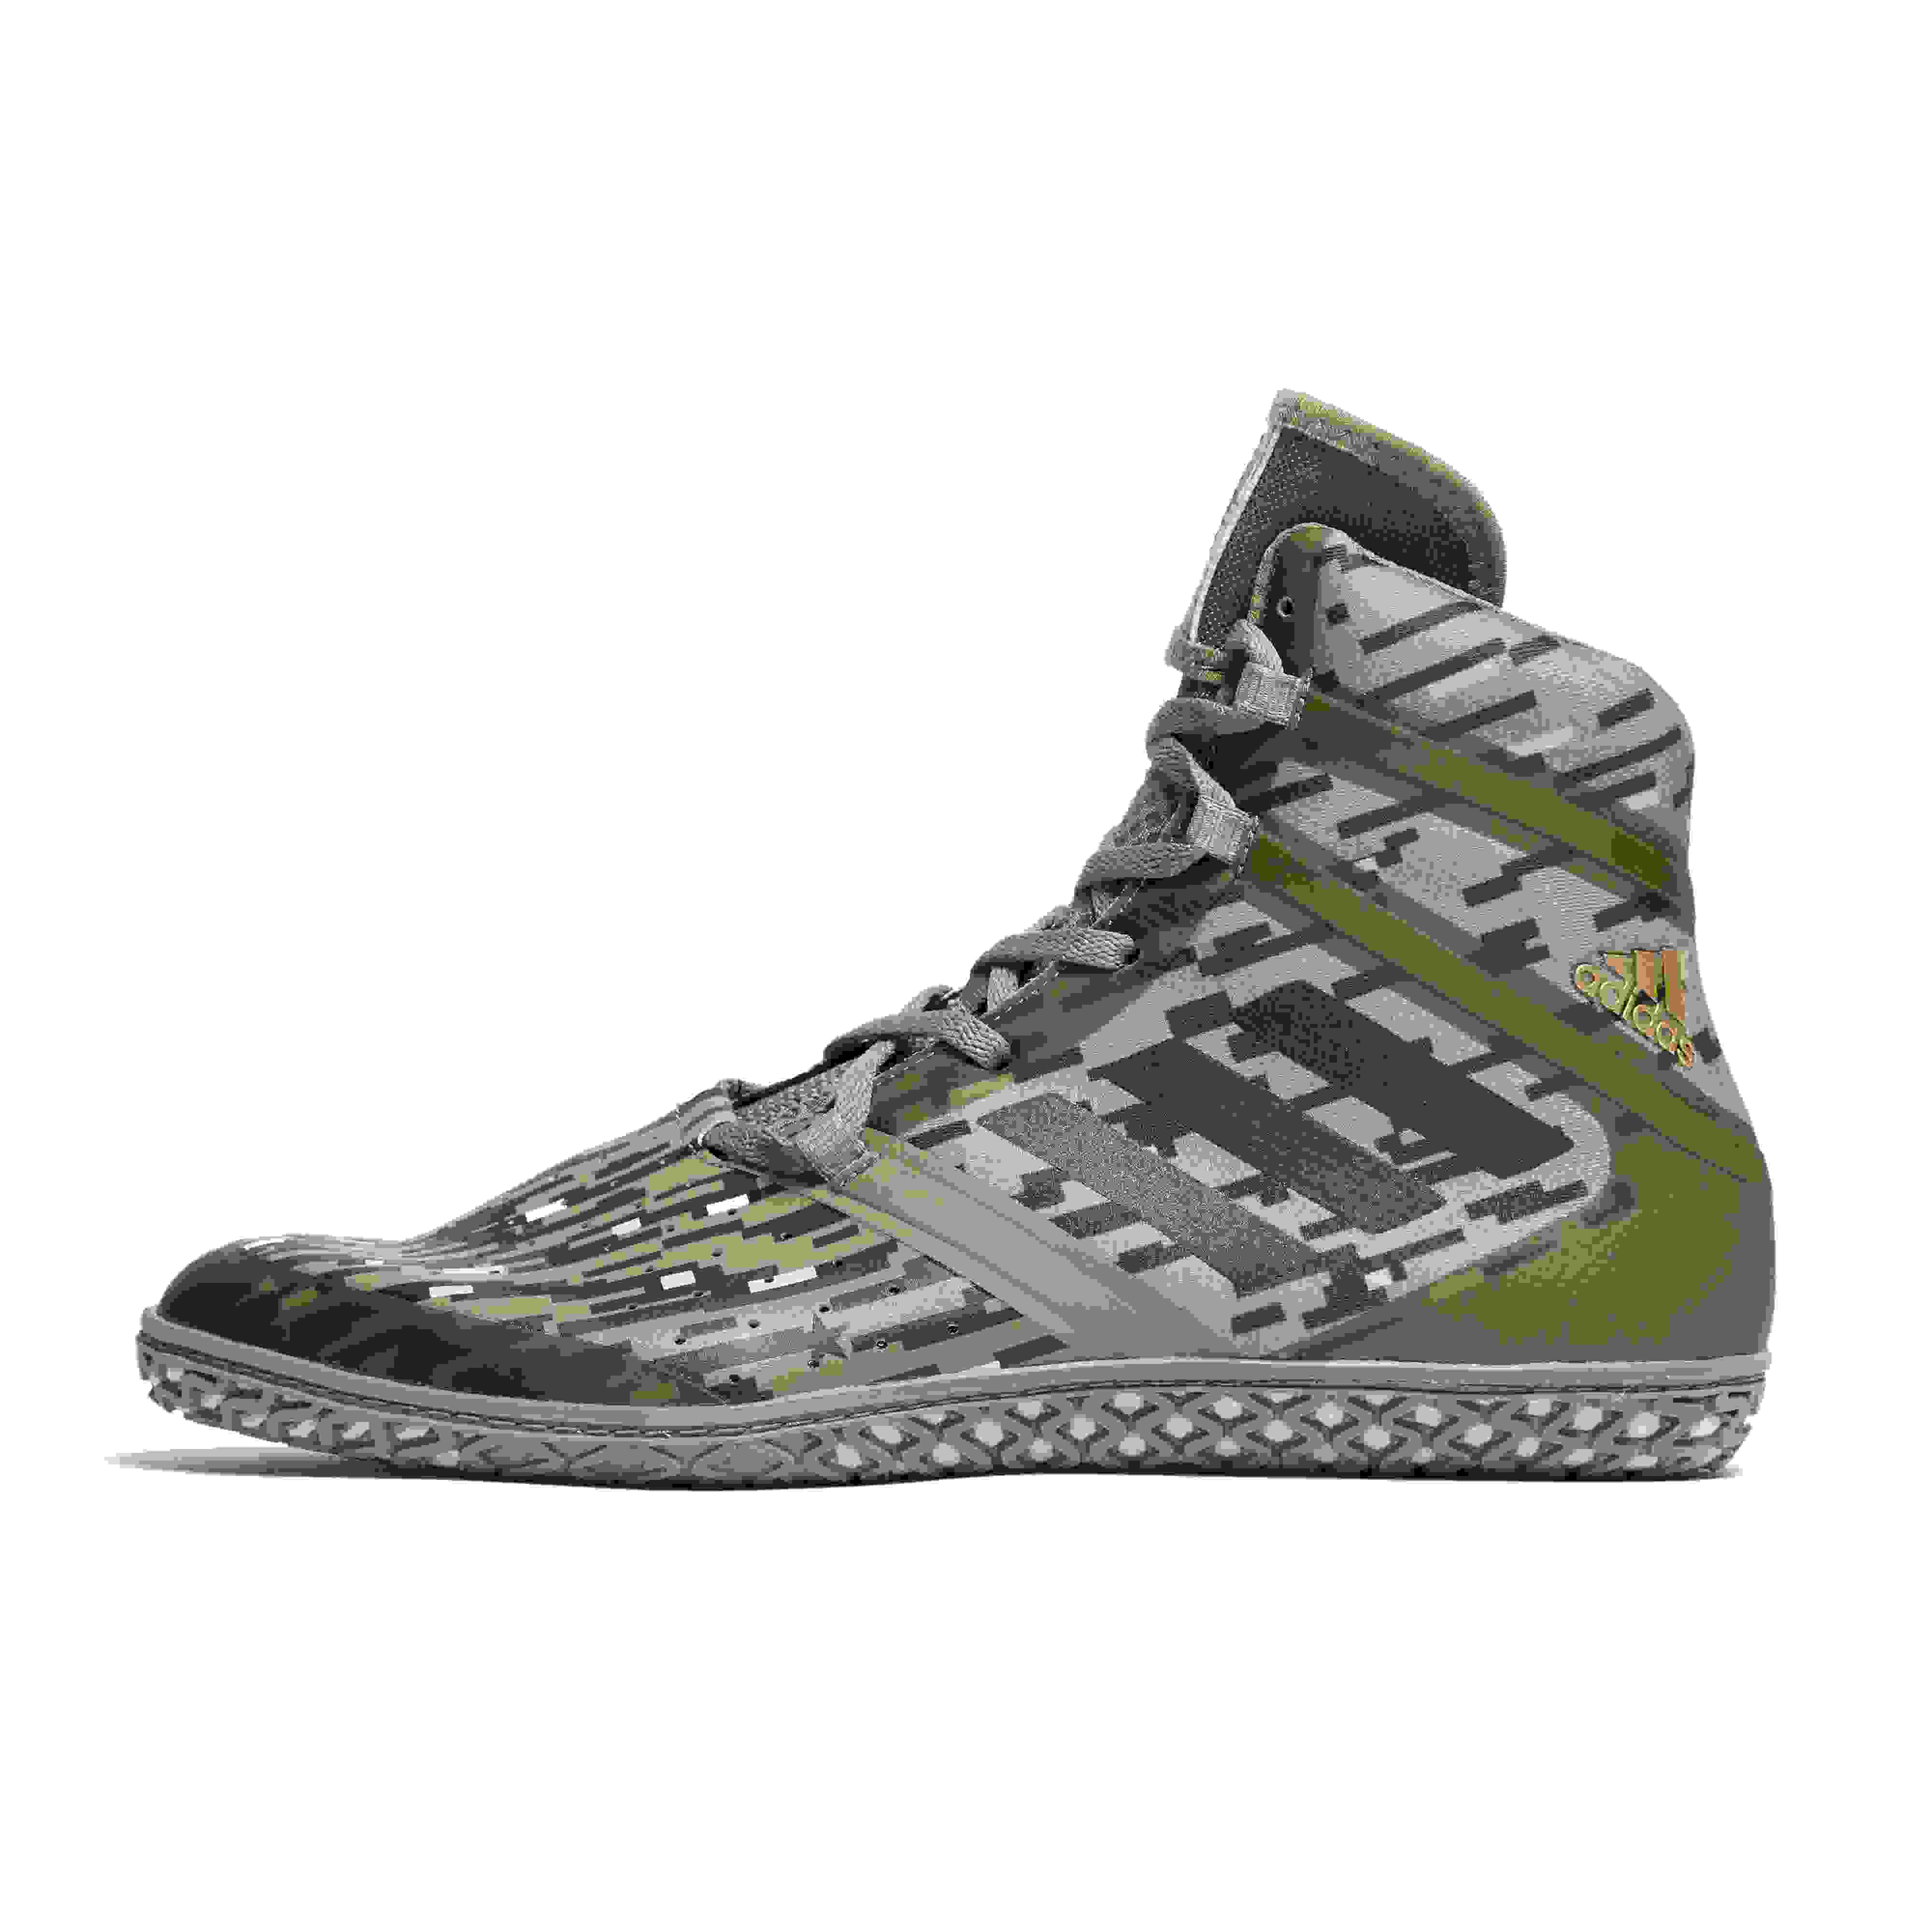 34f806eec91e3 adidas impact boxing shoes for sale on craigslist Adidas Men s Cf Swift  Racer ...